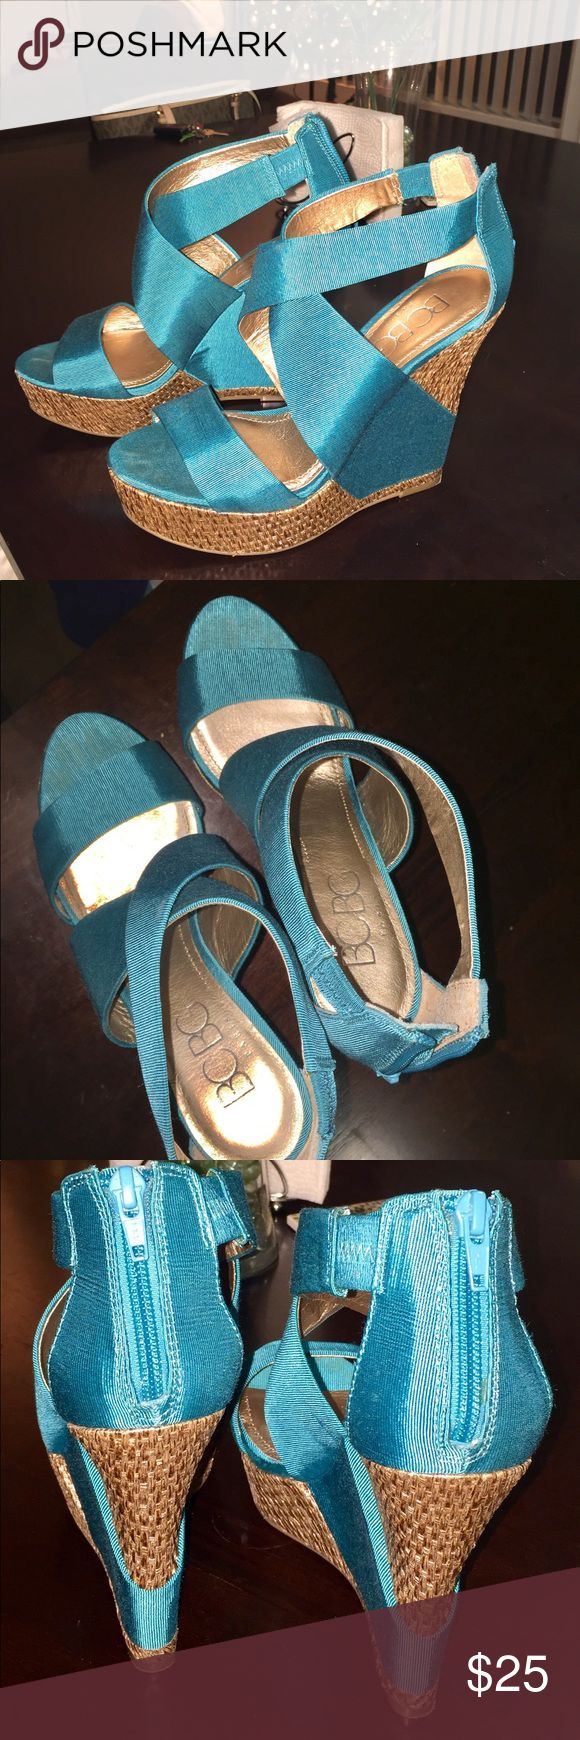 BCBG teal sandals Great summer shoes, I wore only once. Very comfortable and cute! BCBG Shoes Wedges